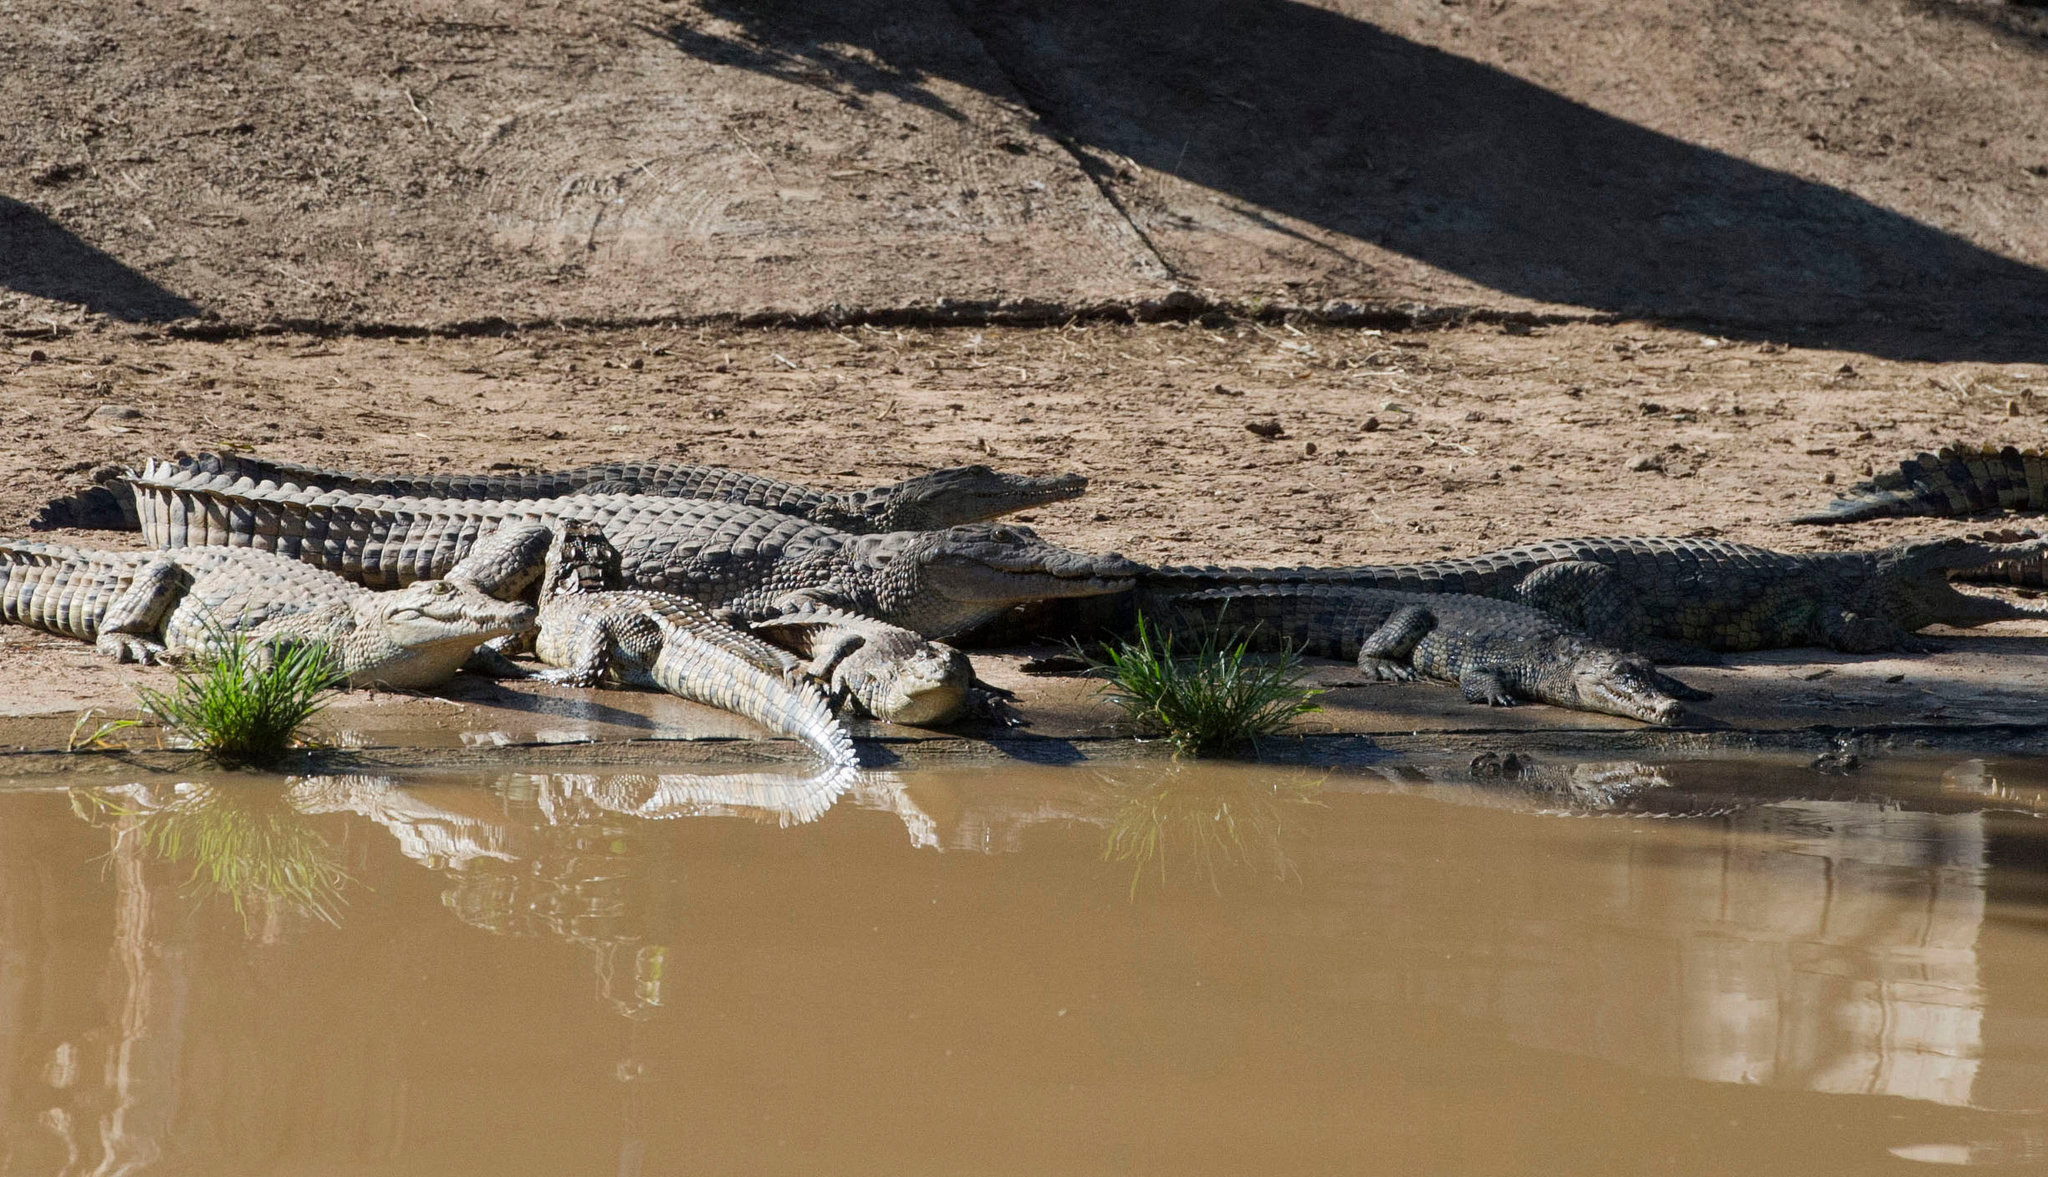 Some recaptured crocodiles on South Africa's Rakwena Crocodile Farm on Wednesday. Credit Associated Press